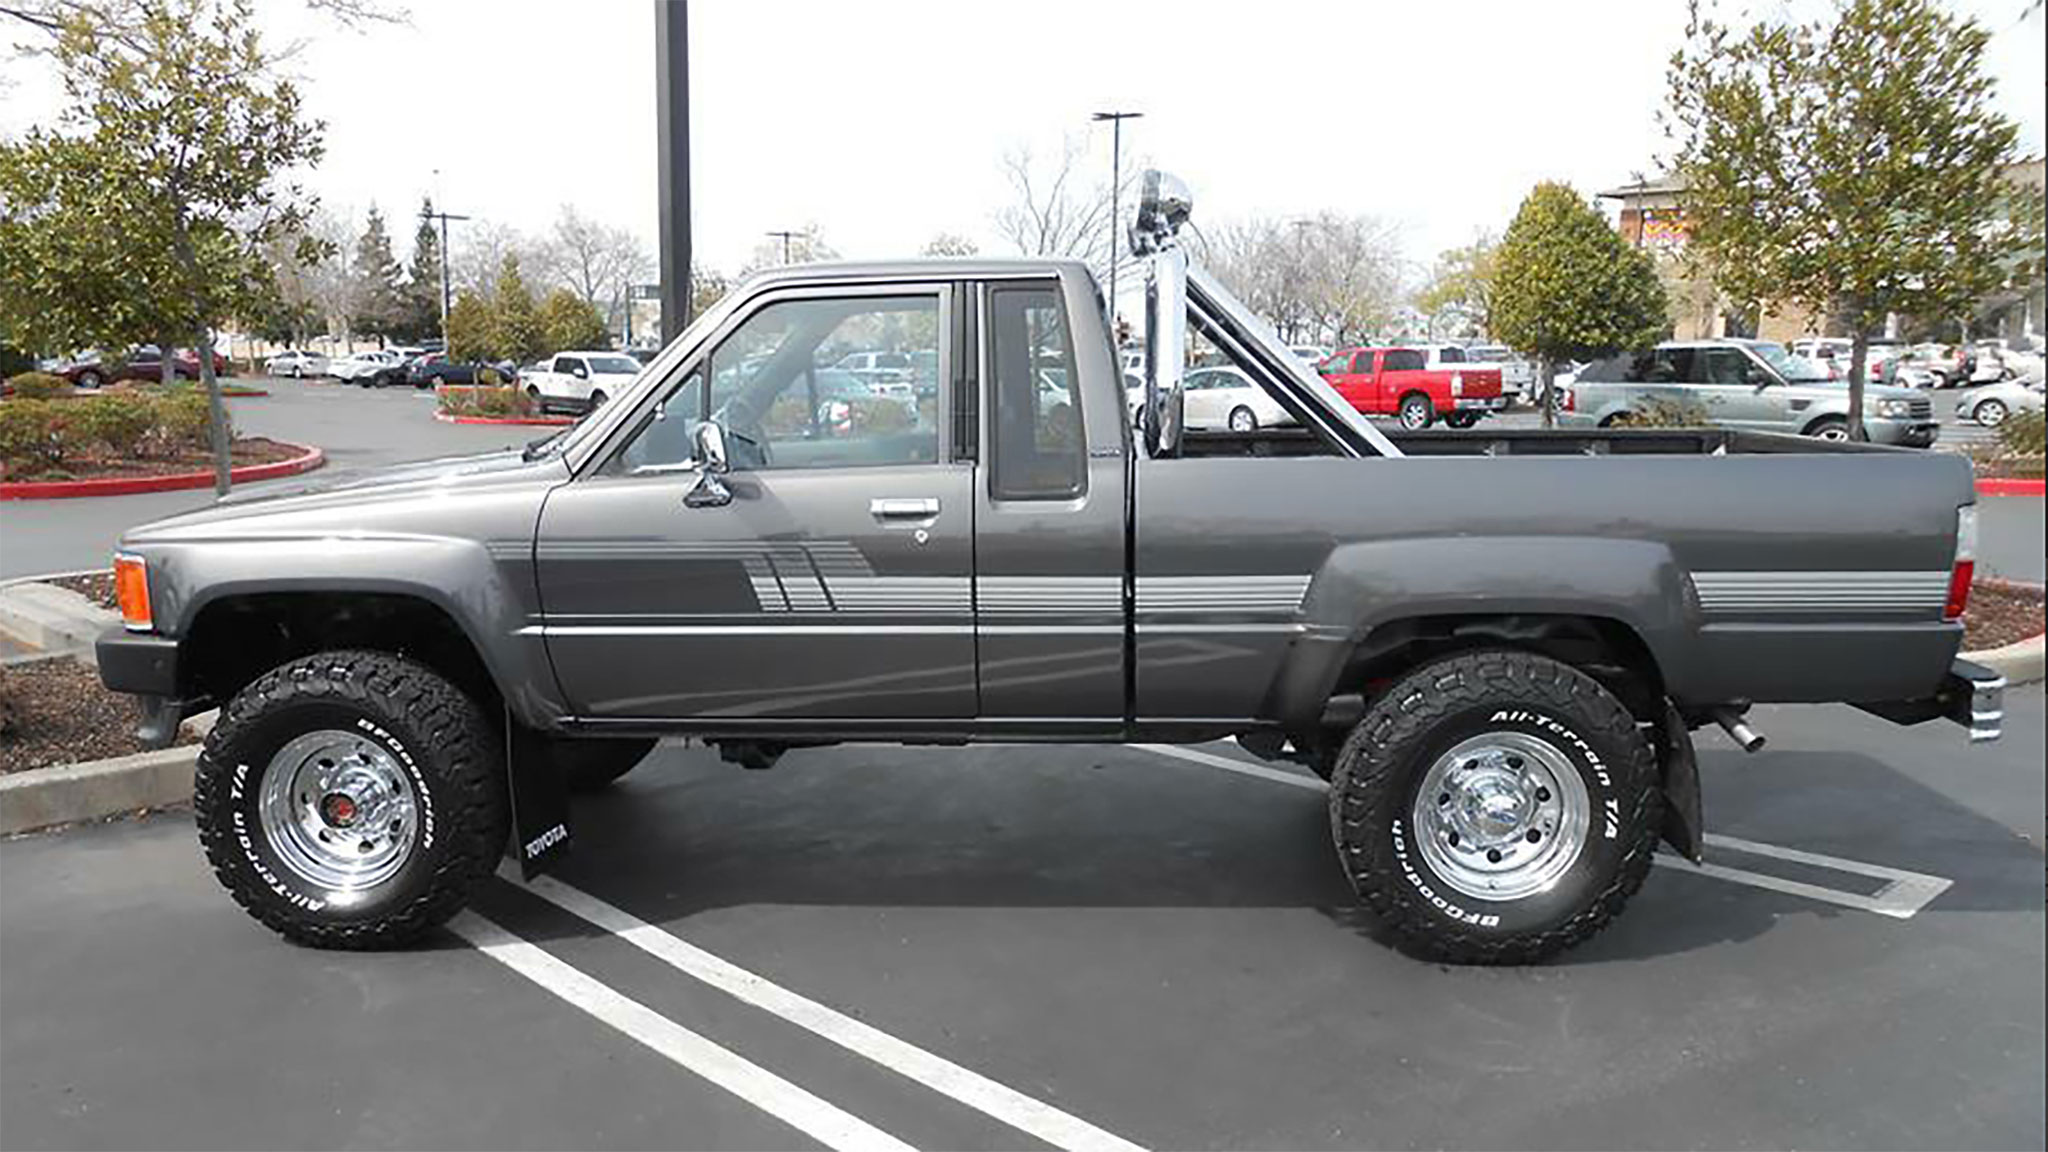 This Restored 1987 Toyota Pickup Truck Will Have You Rolling Like A Mcfly